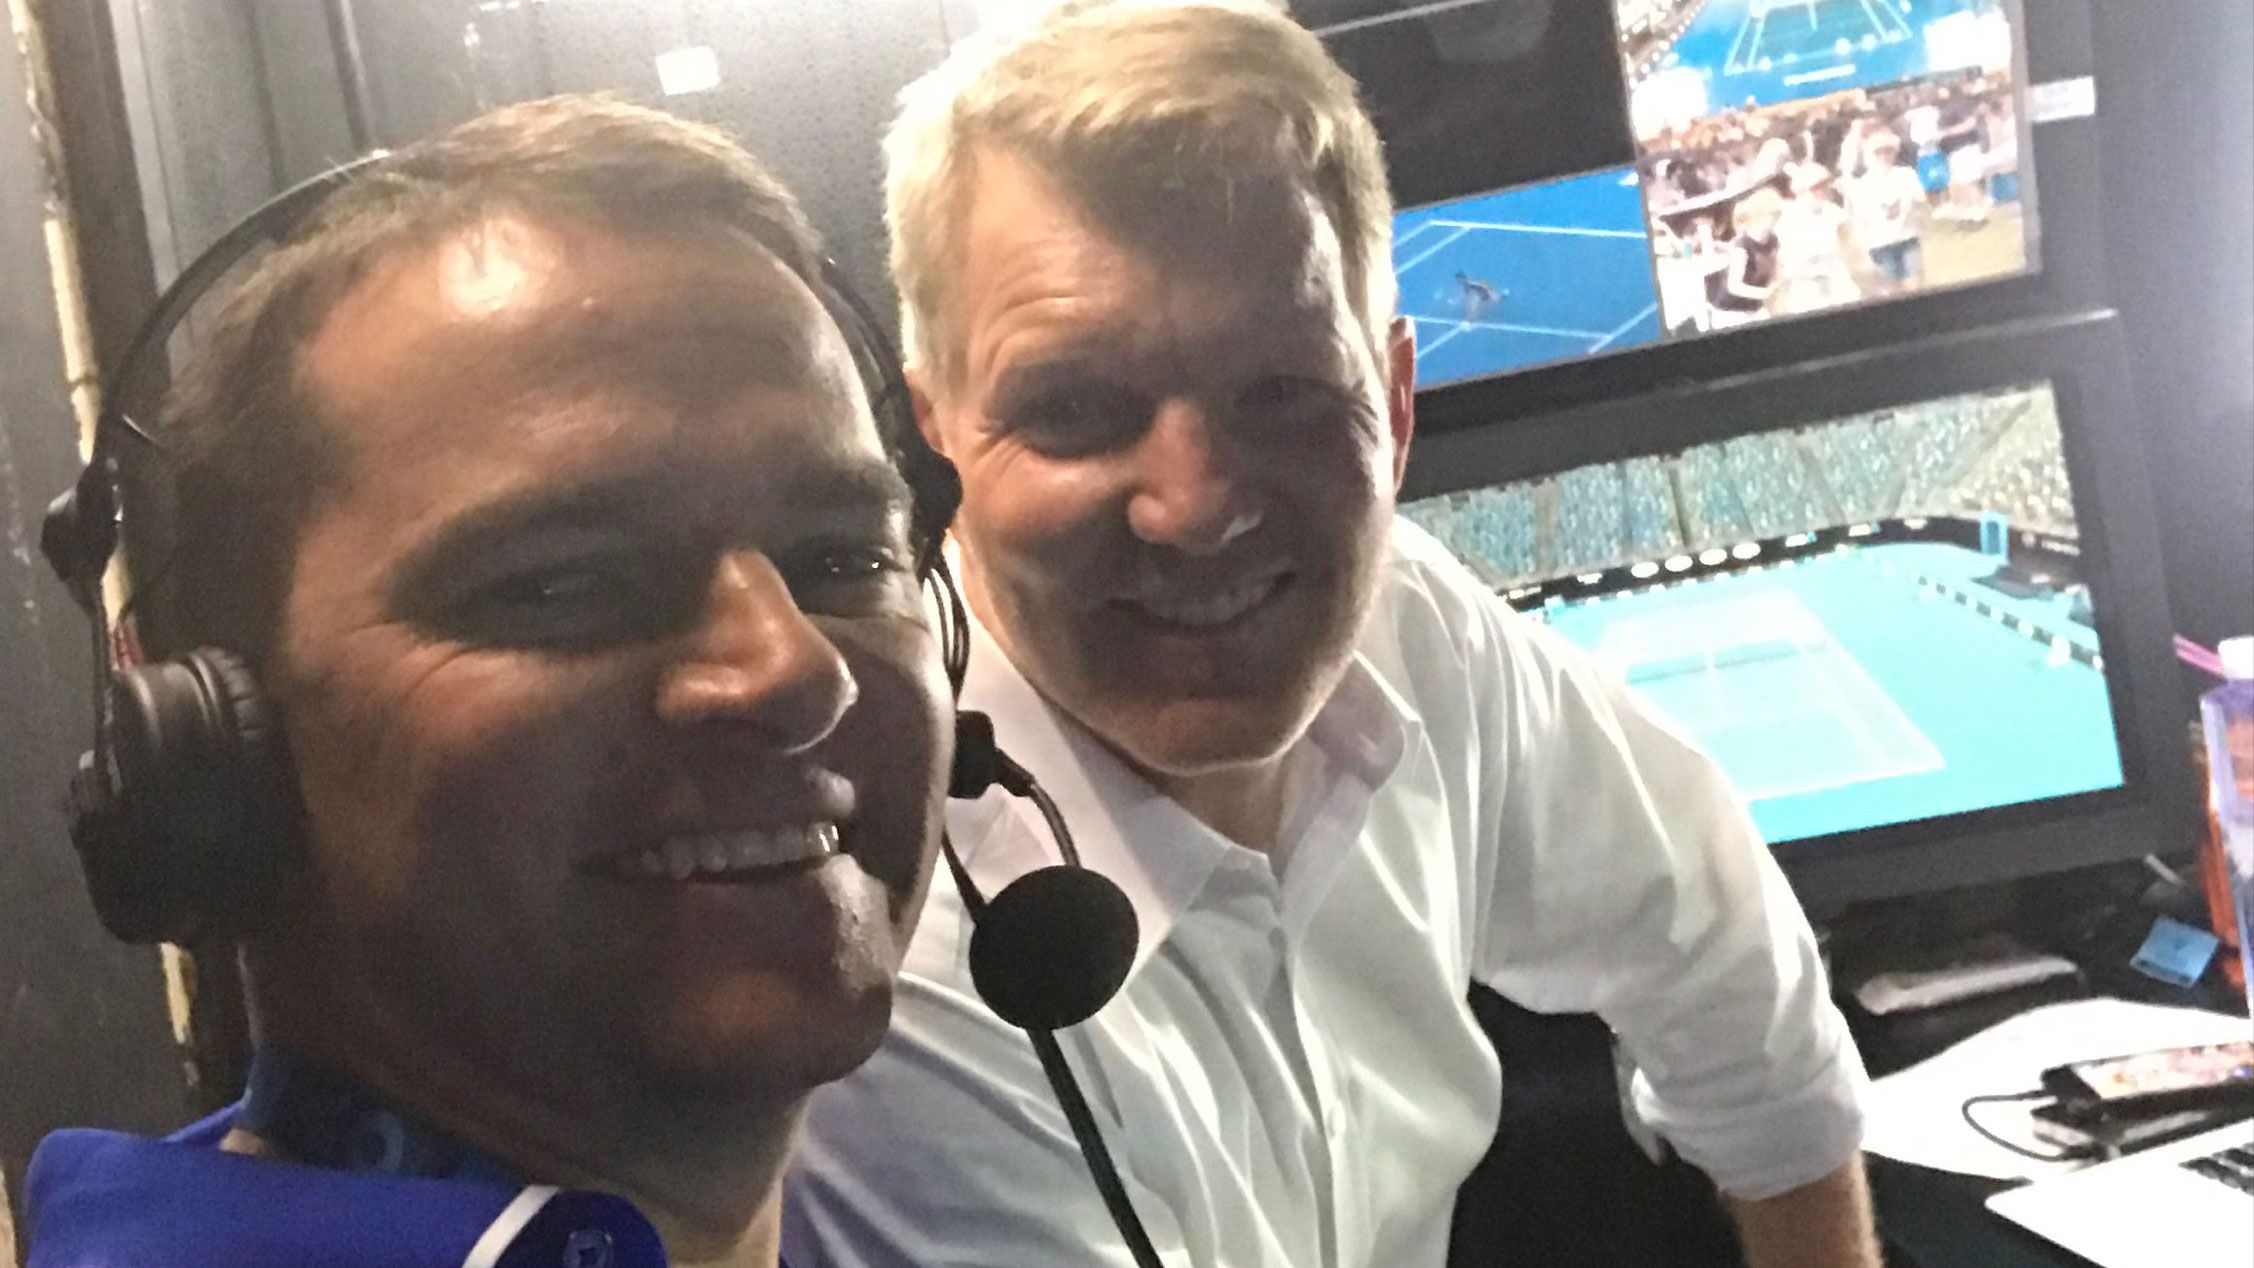 Tom Rehn reveals what it was like to commentate first ever Australian Open match